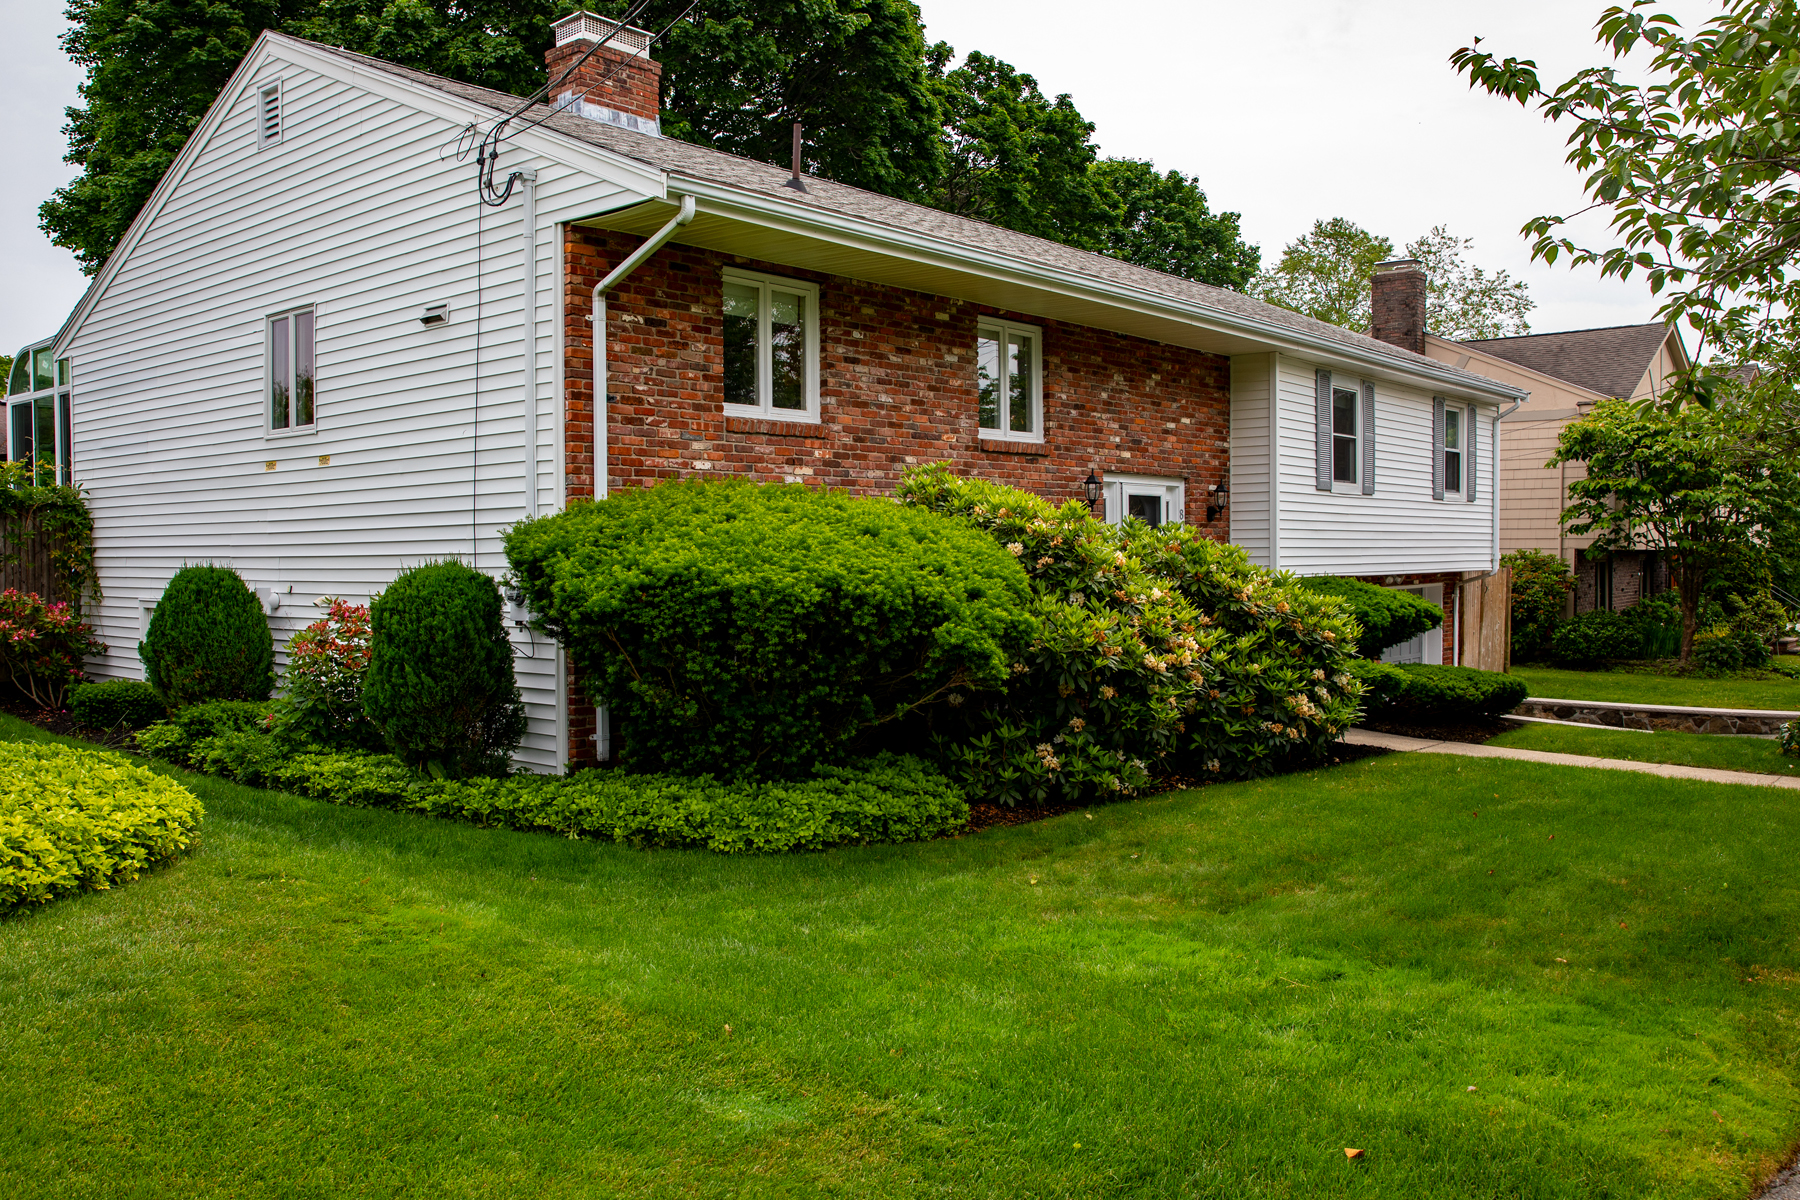 Single Family Homes for Sale at Immaculate 4 bedroom contemporary 8 Priscilla Road Swampscott, Massachusetts 01907 United States